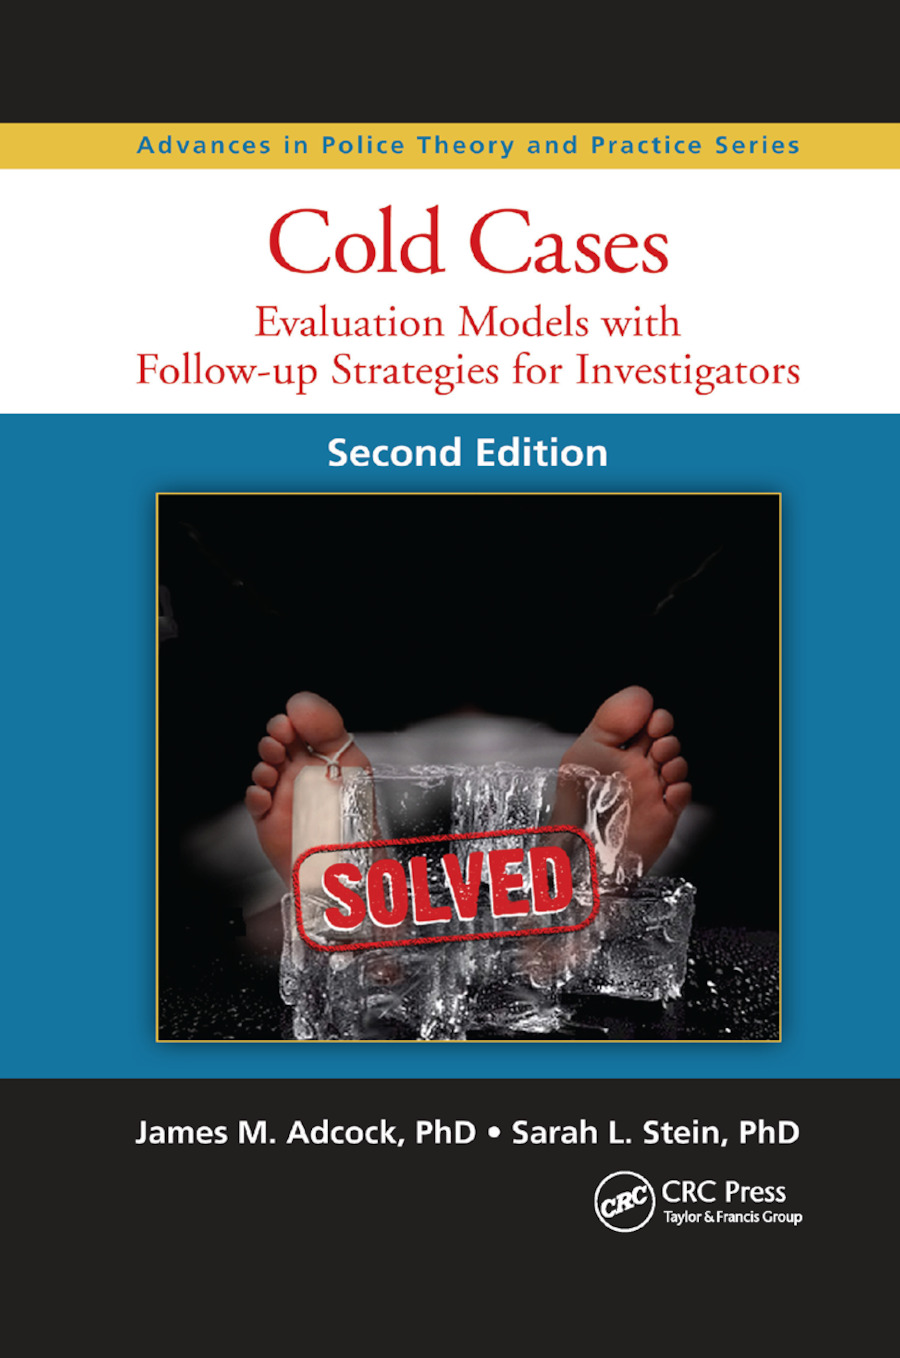 Cold Cases: Evaluation Models with Follow-up Strategies for Investigators, Second Edition book cover